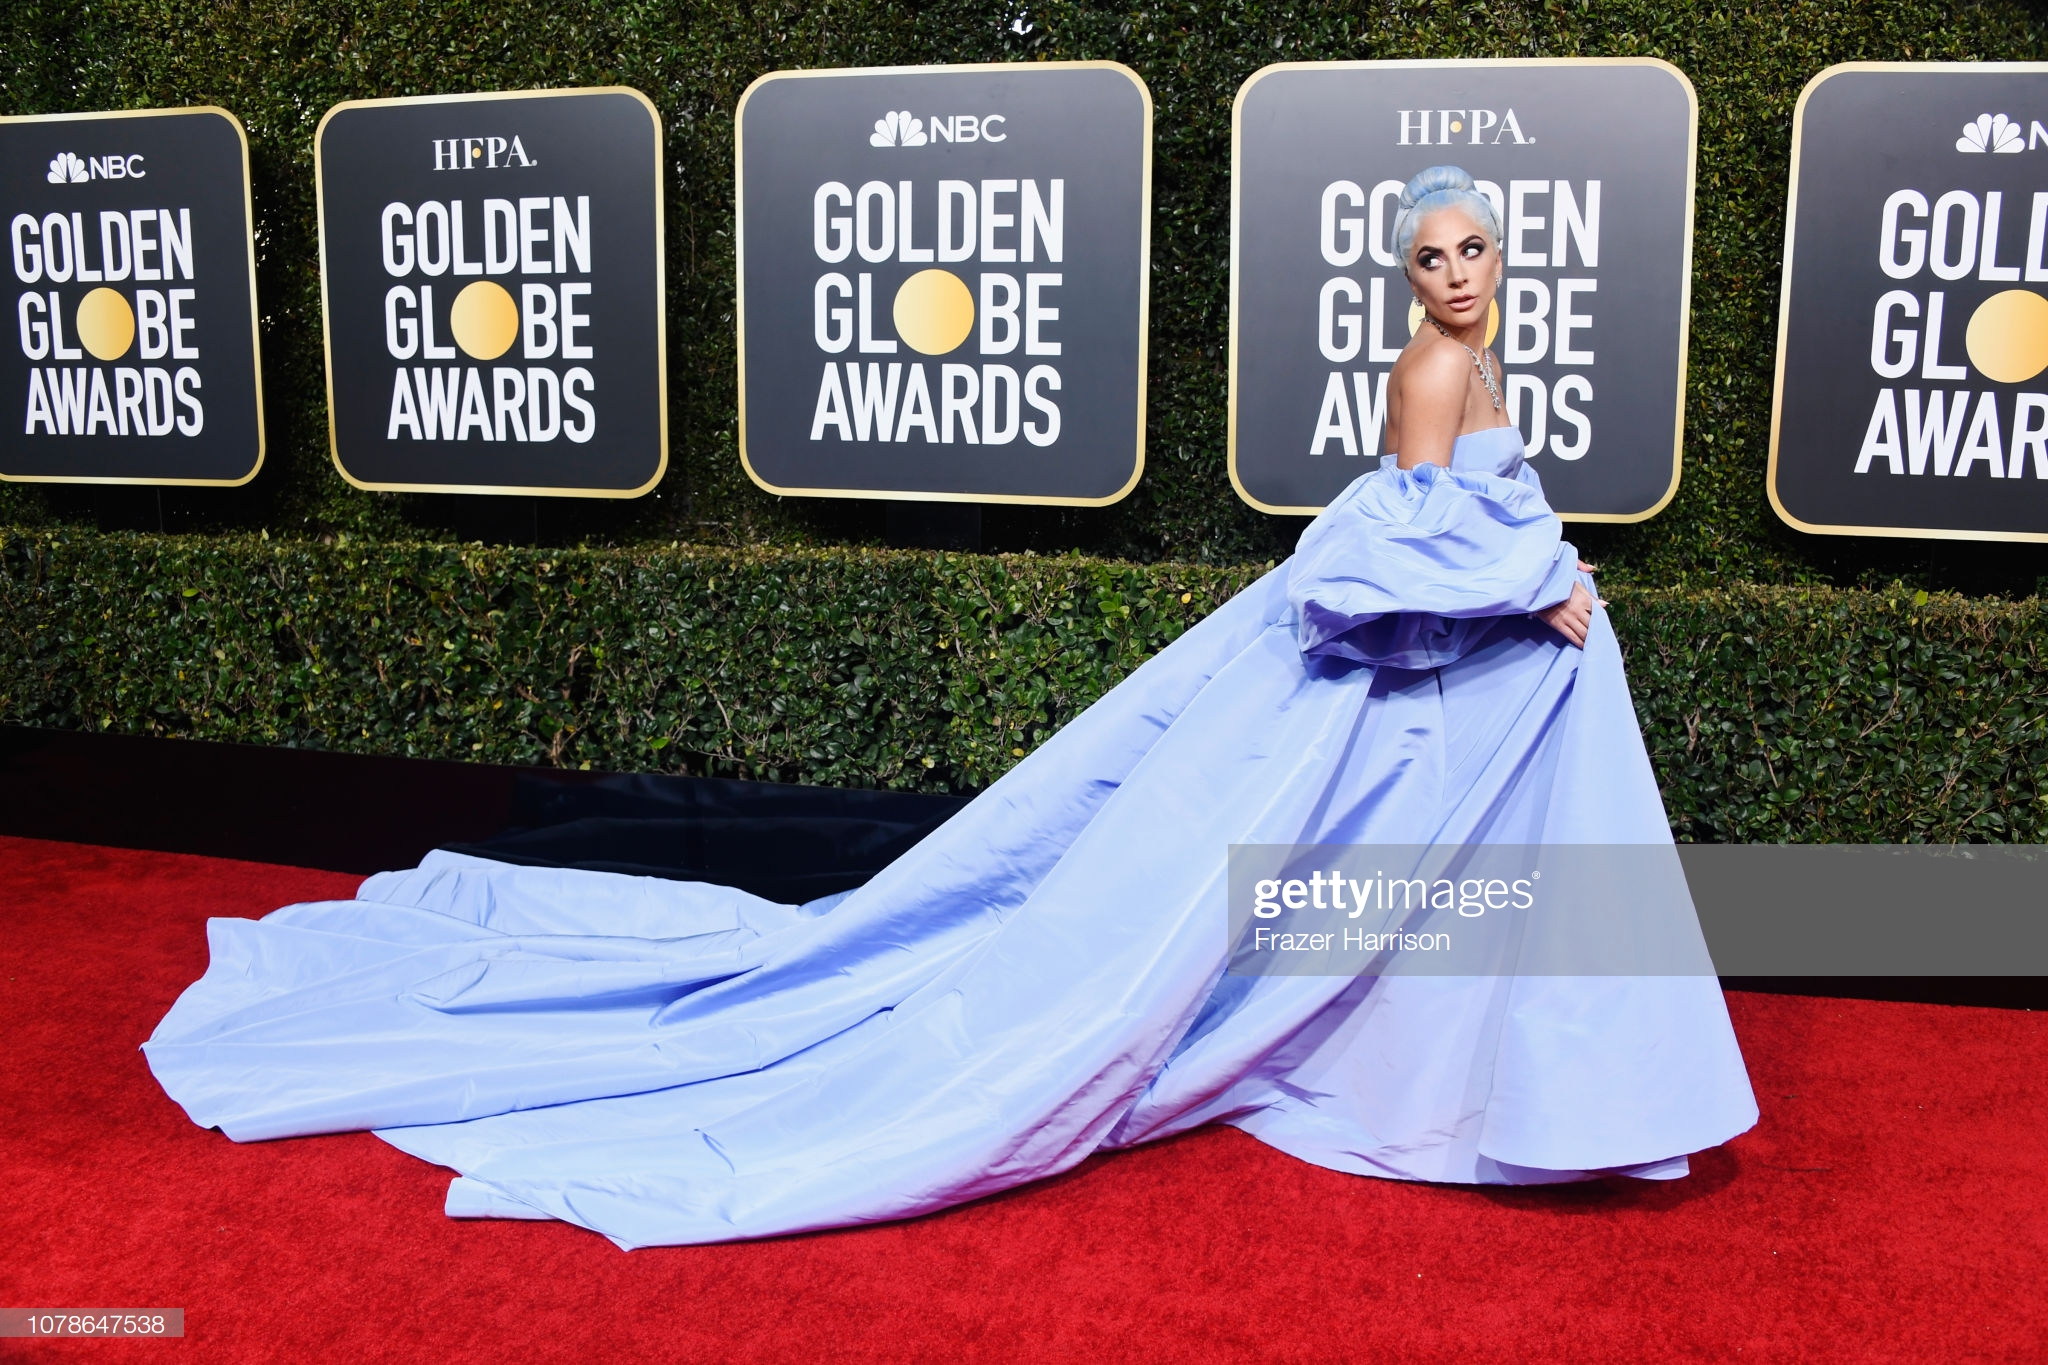 gettyimages-1078647538-2048x2048.jpg